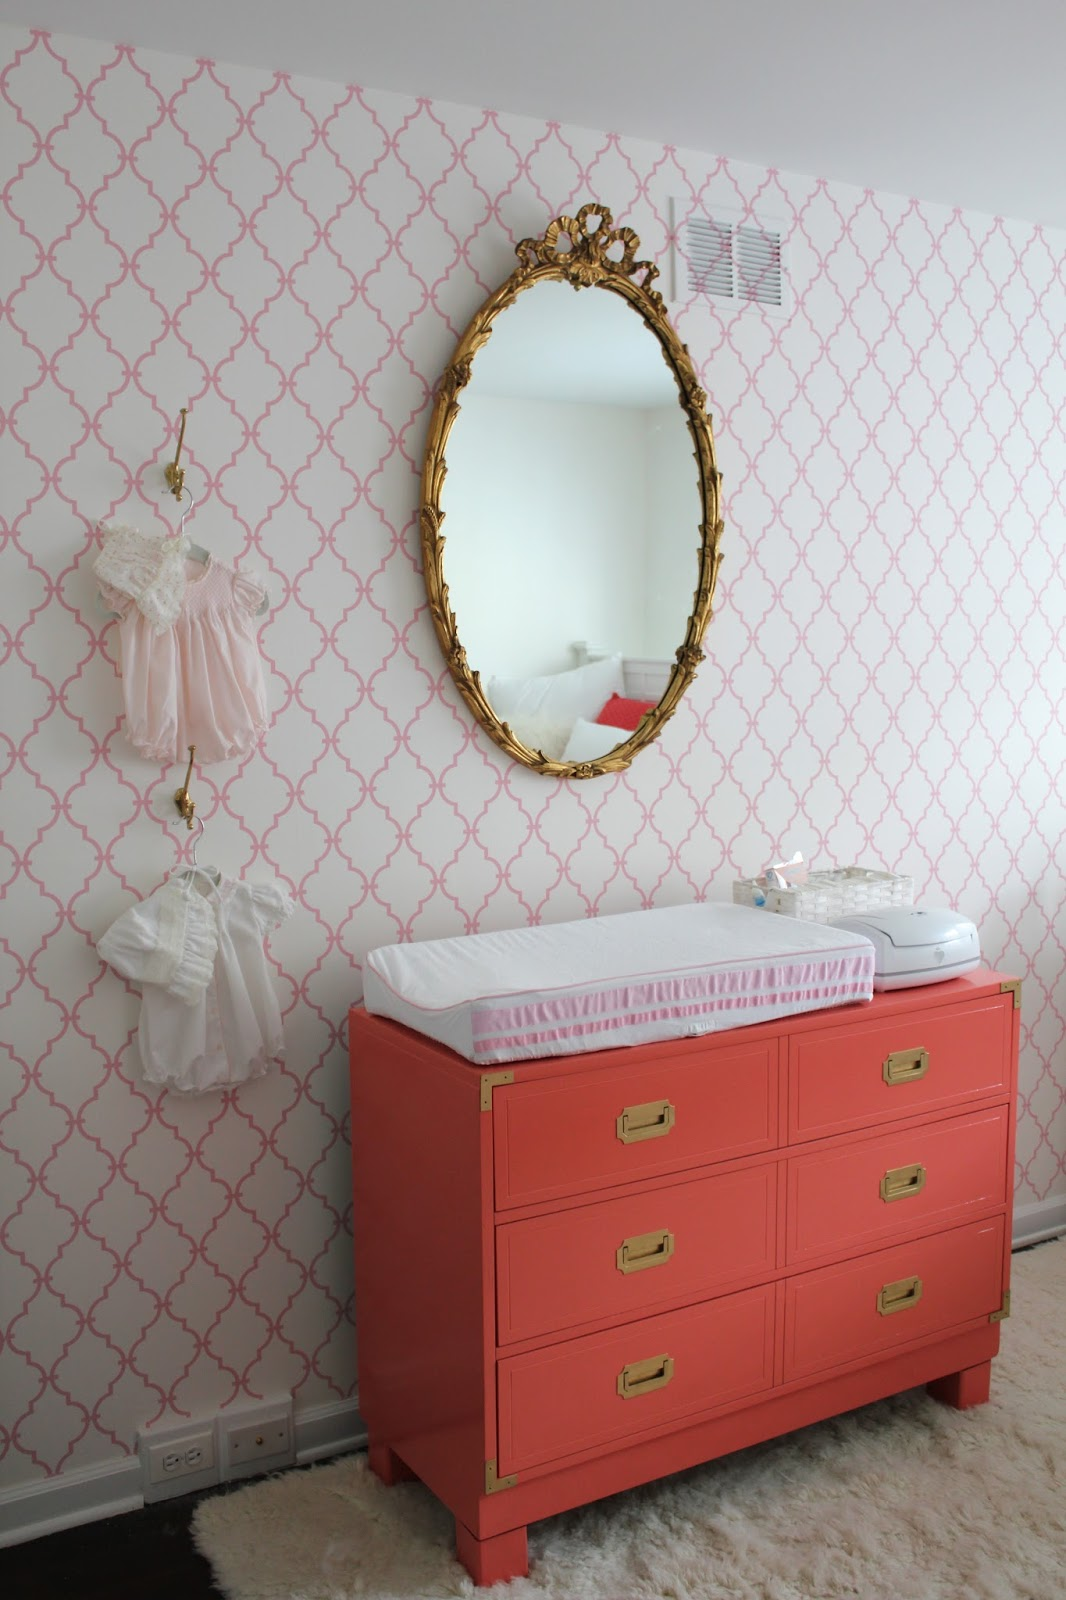 Antique pink nursery : Pink and gold dresser with mirror